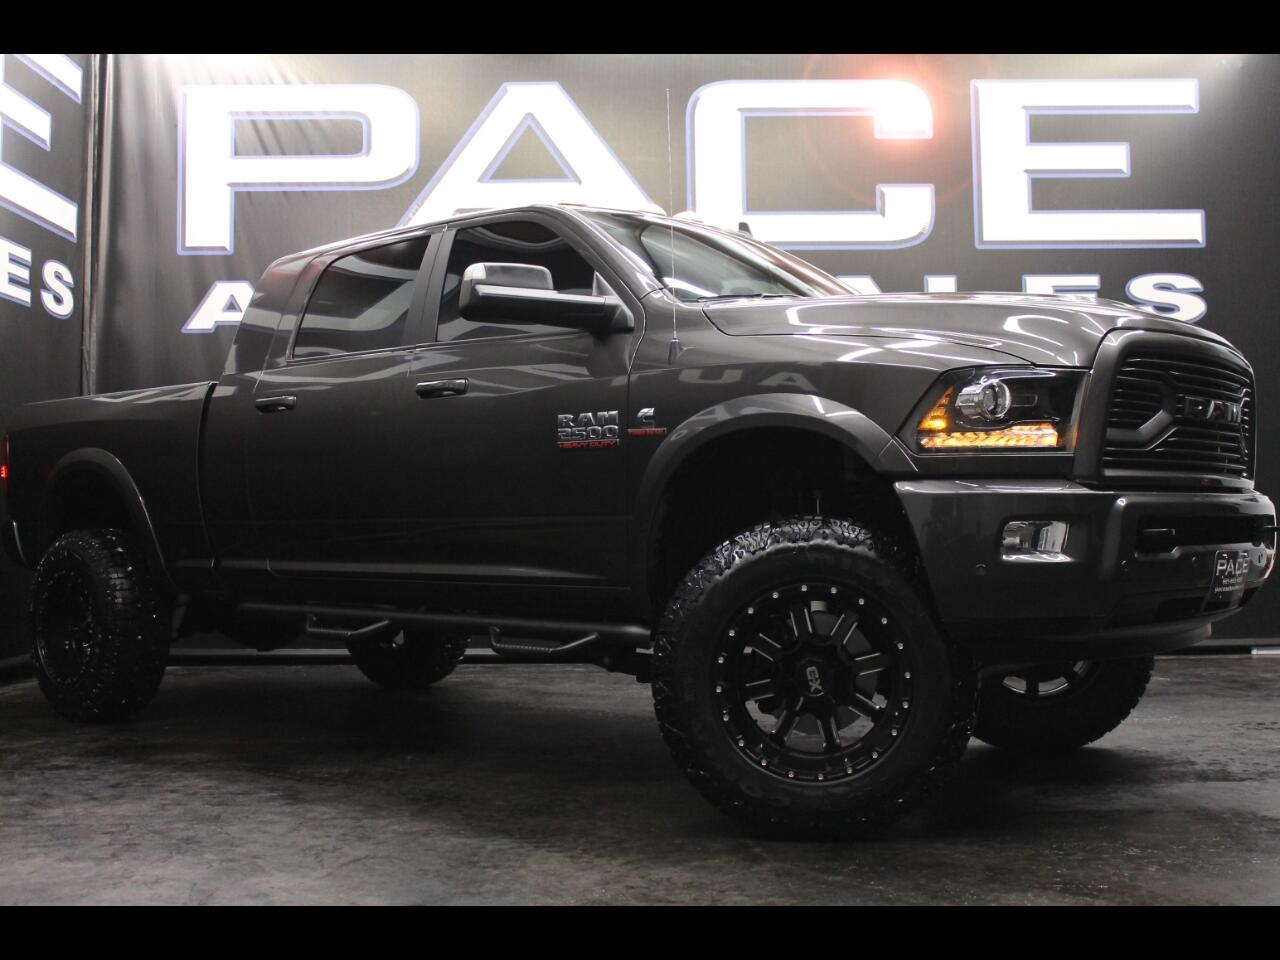 2018 RAM 2500 Laramie 4x4 Mega Cab Lifted Custom